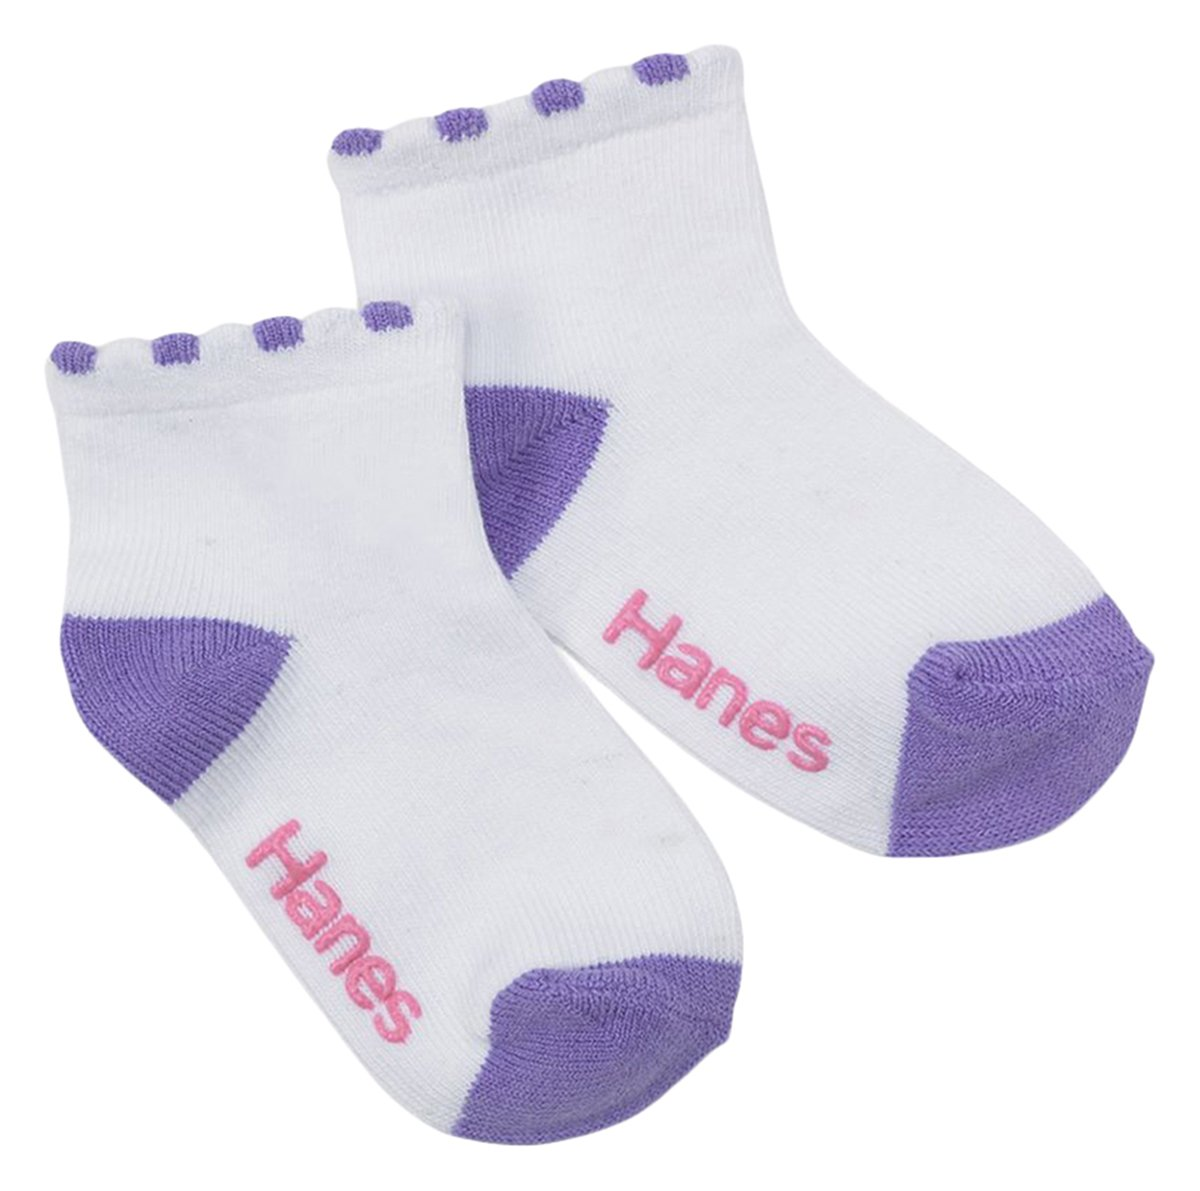 Amazon.com: Hanes Toddler Girls Non-Skid Ankle Socks, 6 pack, 12-24  mo-colors may vary: Baby - Amazon.com: Hanes Toddler Girls Non-Skid Ankle Socks, 6 Pack, 12